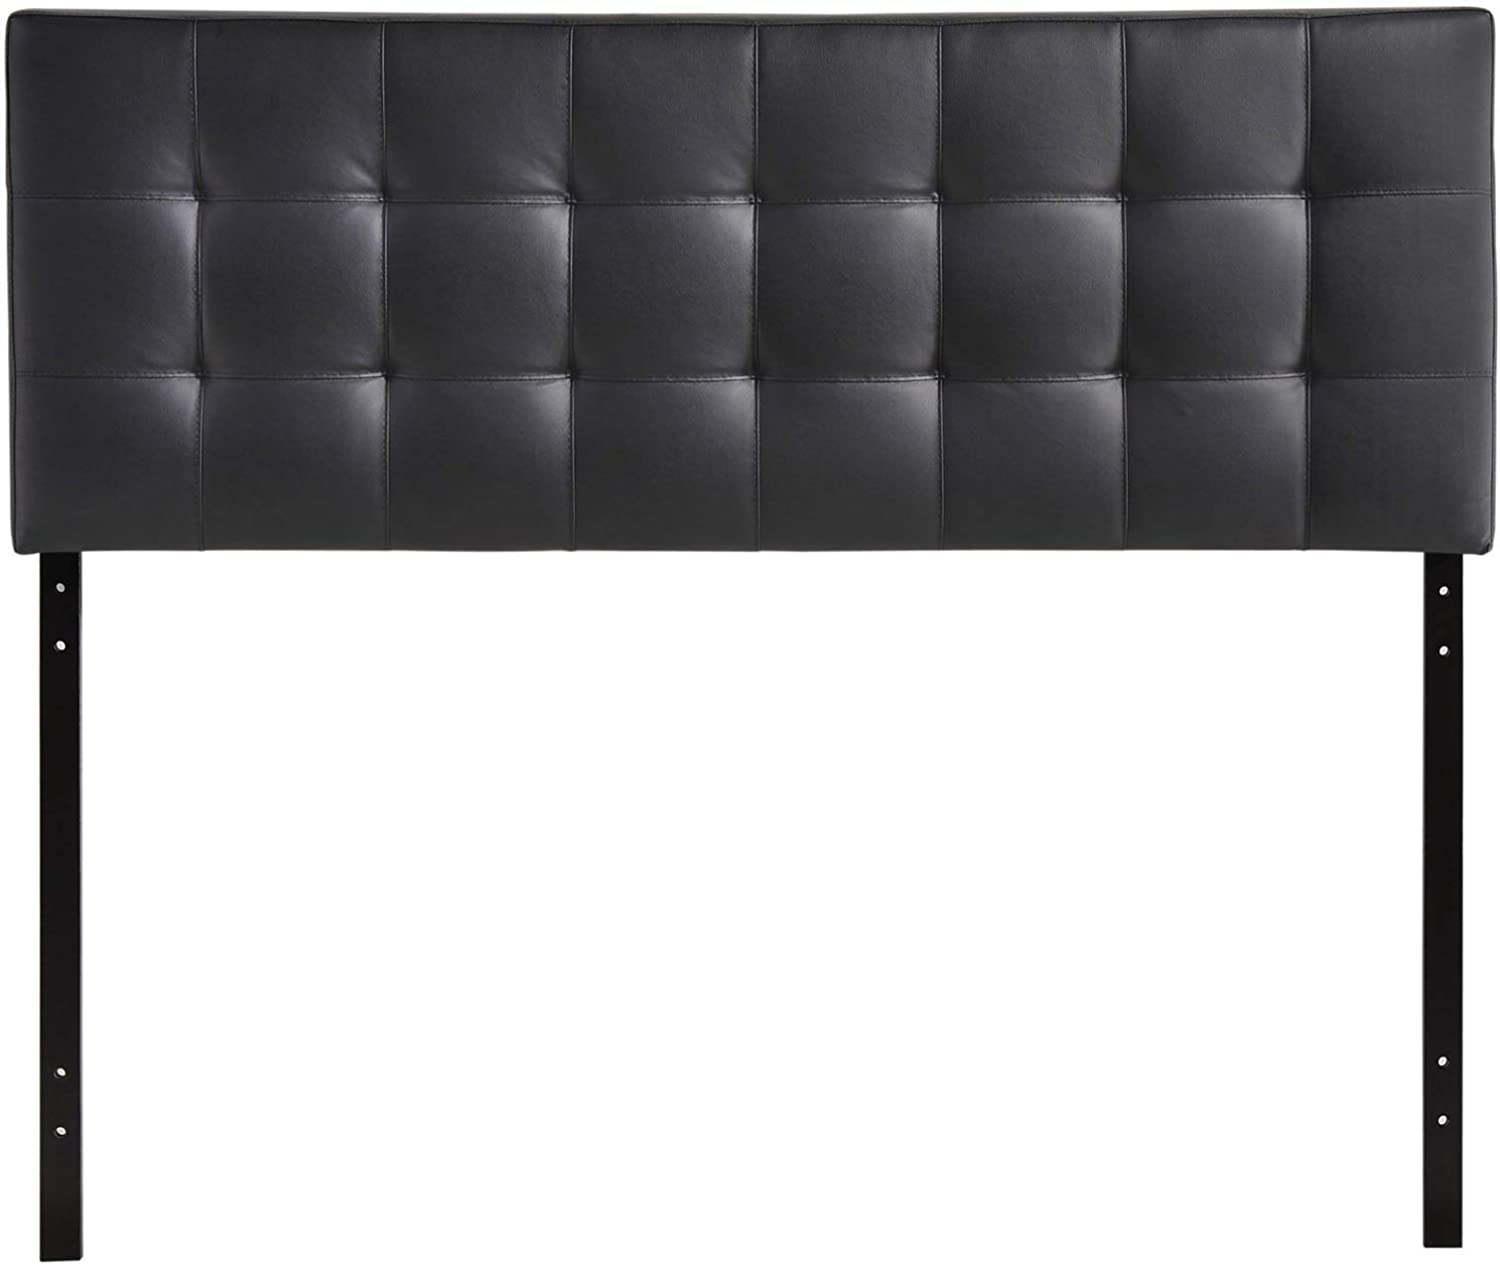 Modway Lily Tufted Faux Leather Upholstered Queen Headboard in Black Renewed